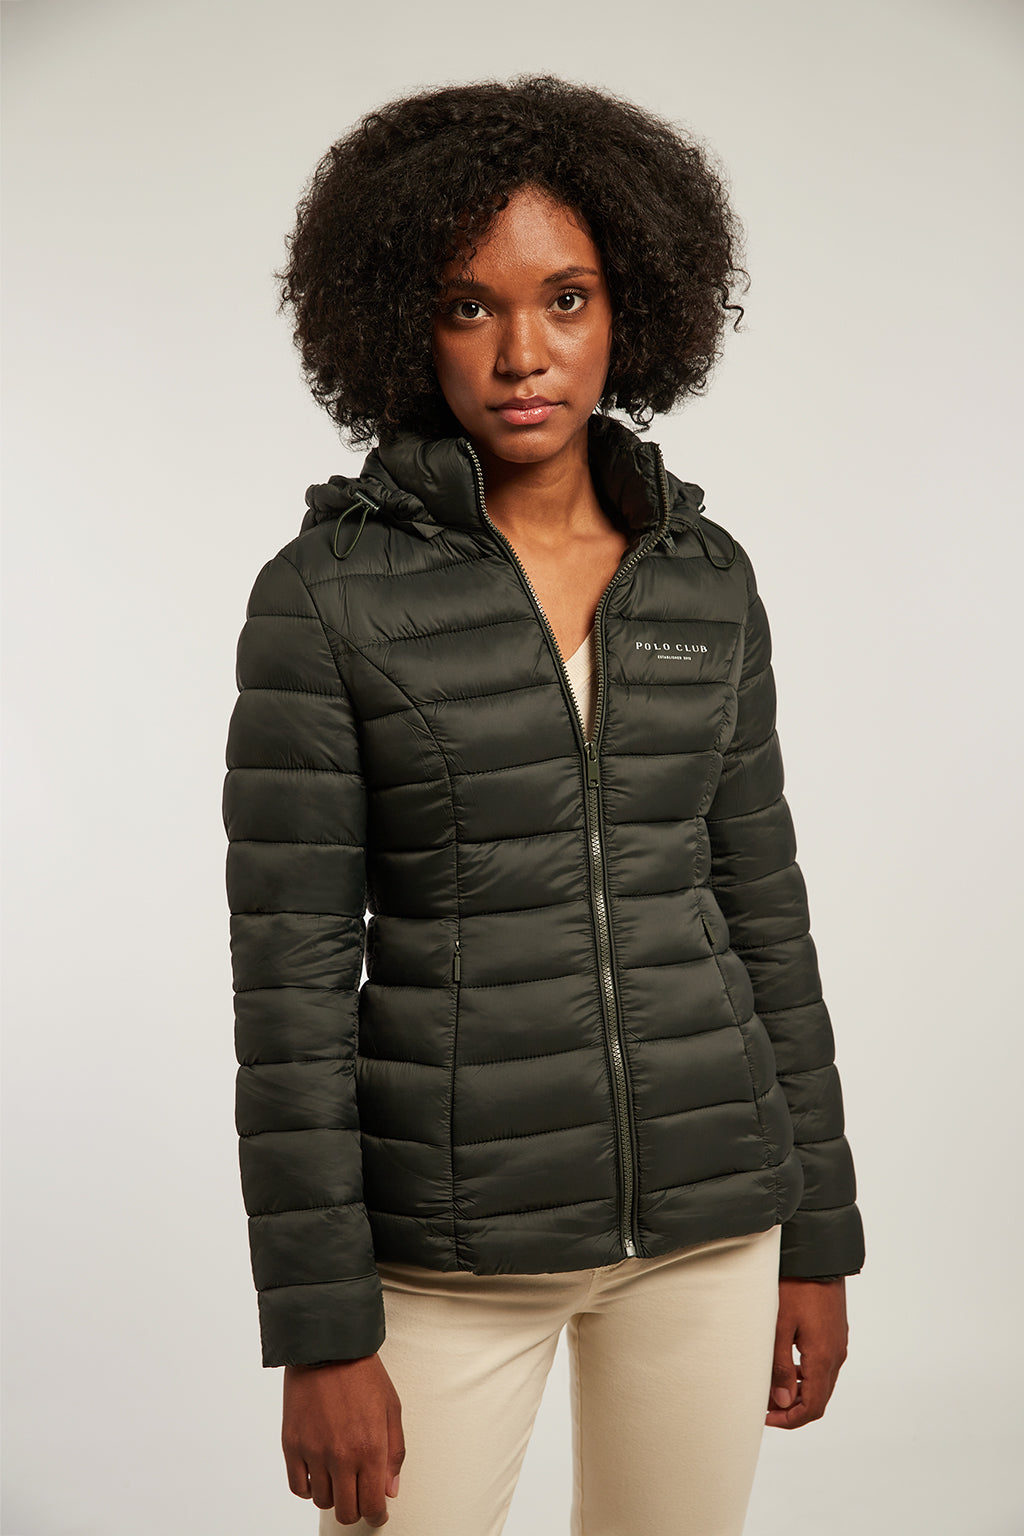 Green quilted and fitted jacket with hood